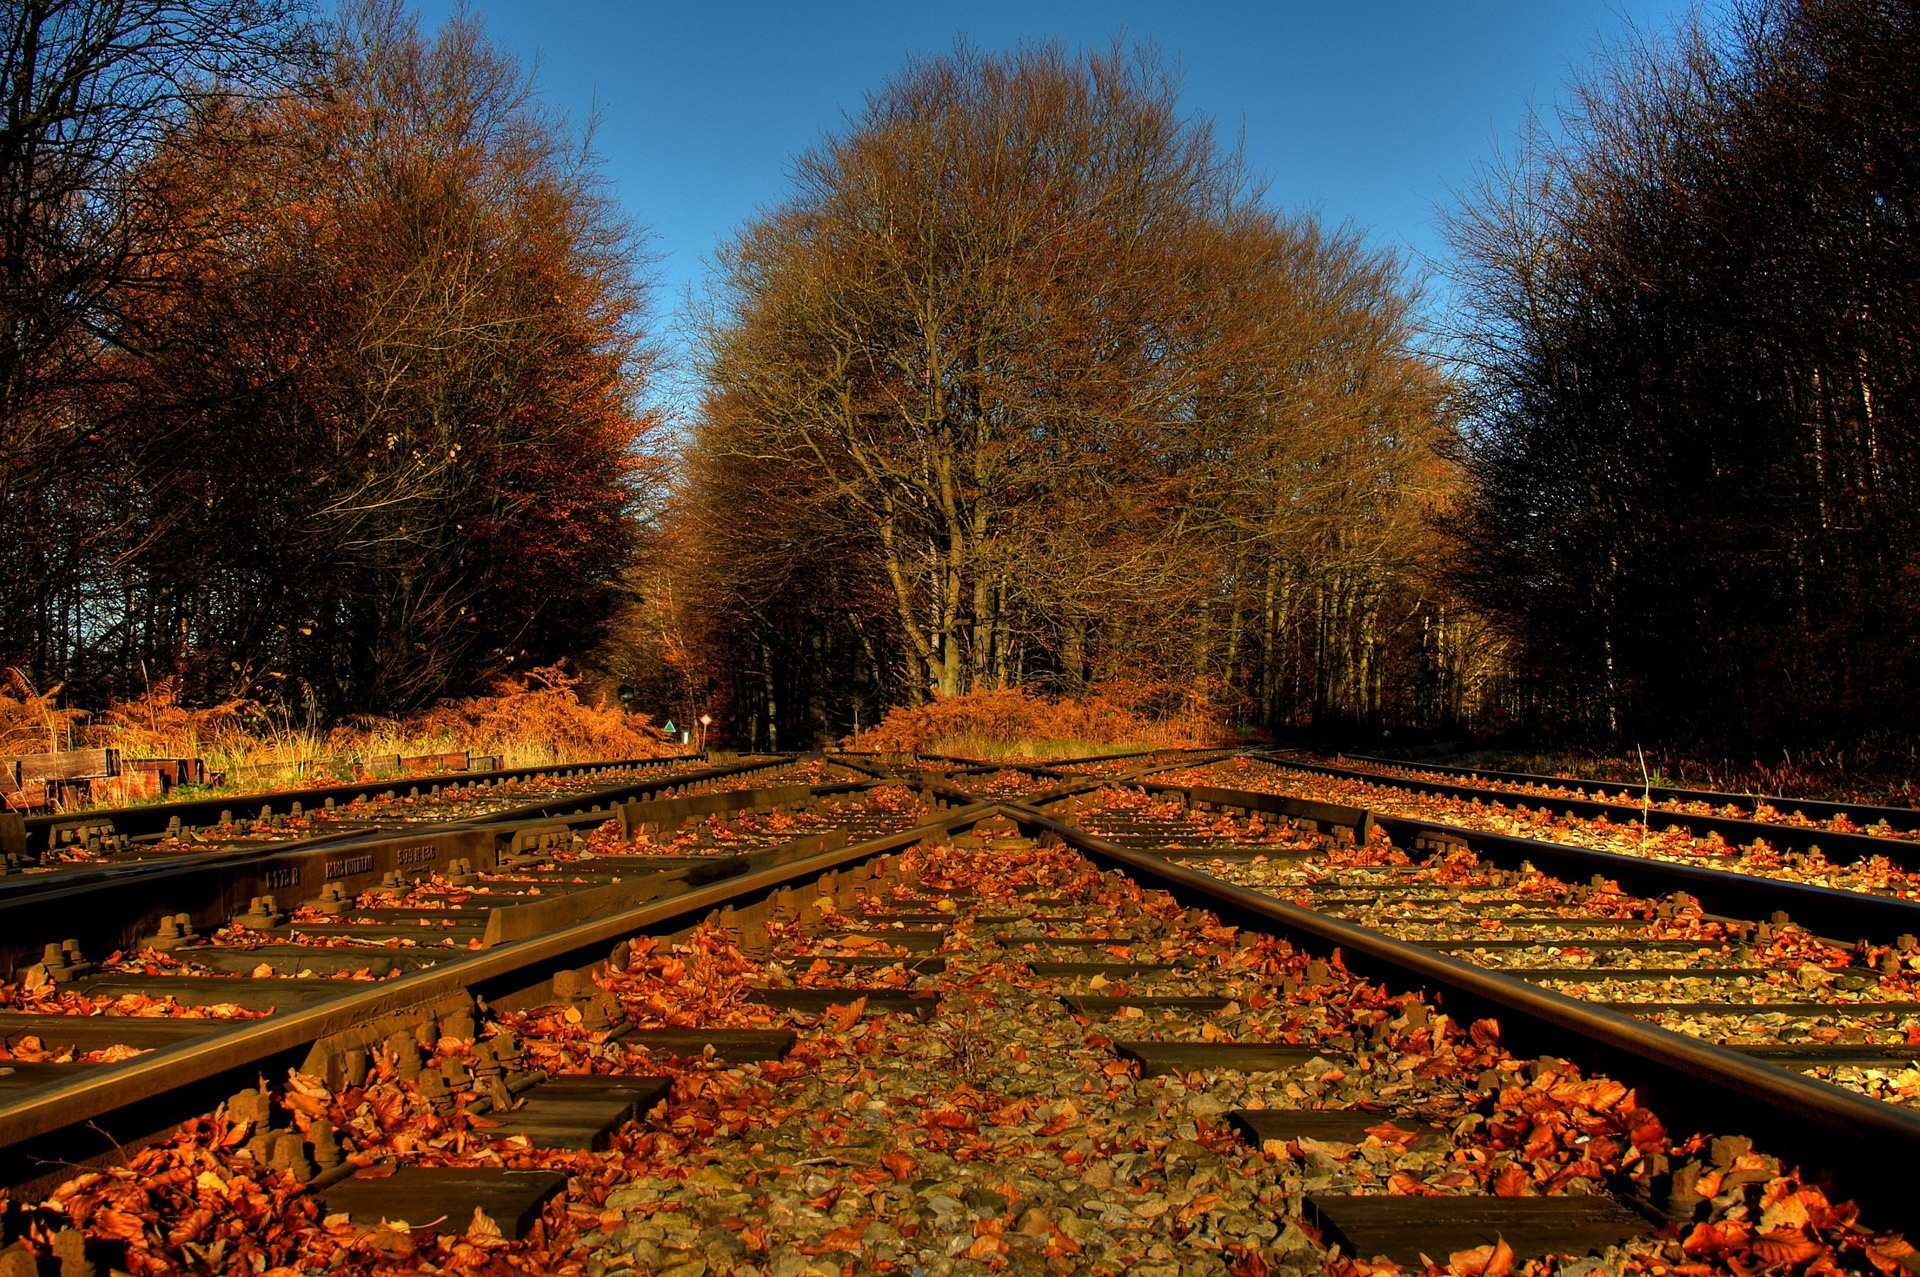 trees foliage leaves railroad tracks crossing road autumn